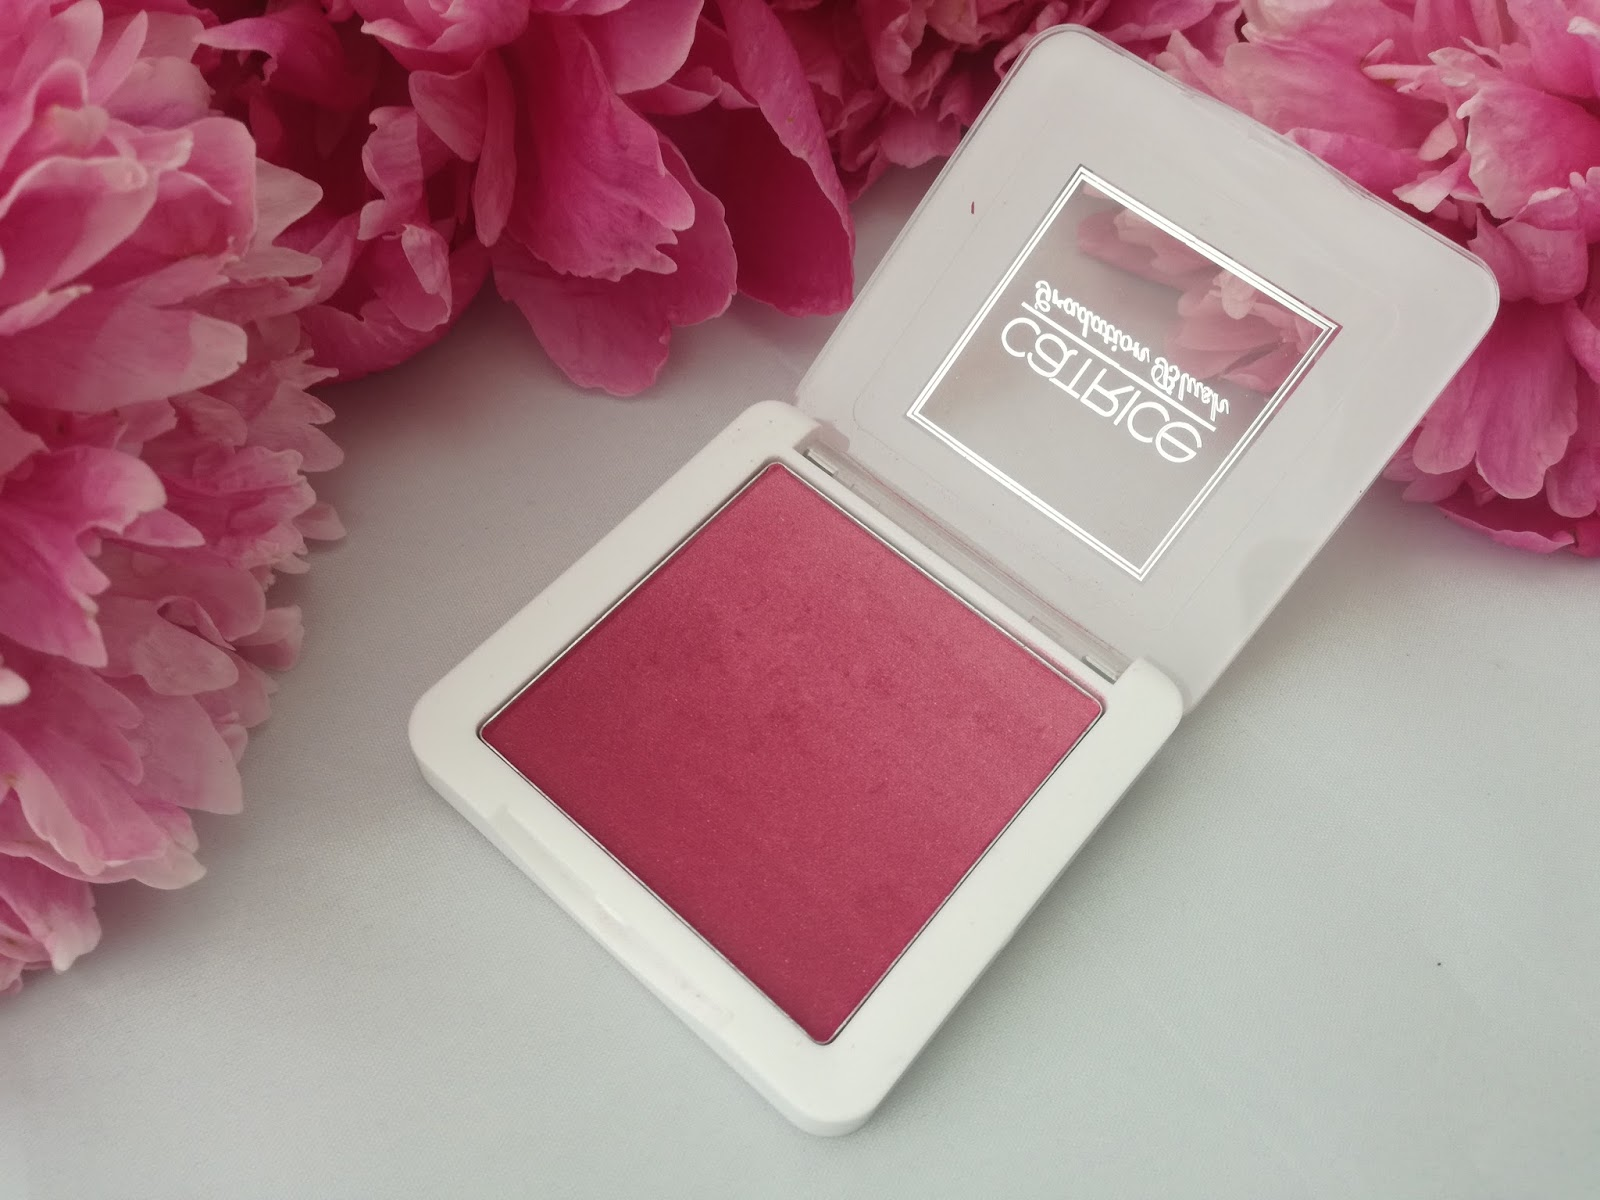 catrice-provocatrice-limited-edition-gradation-blush